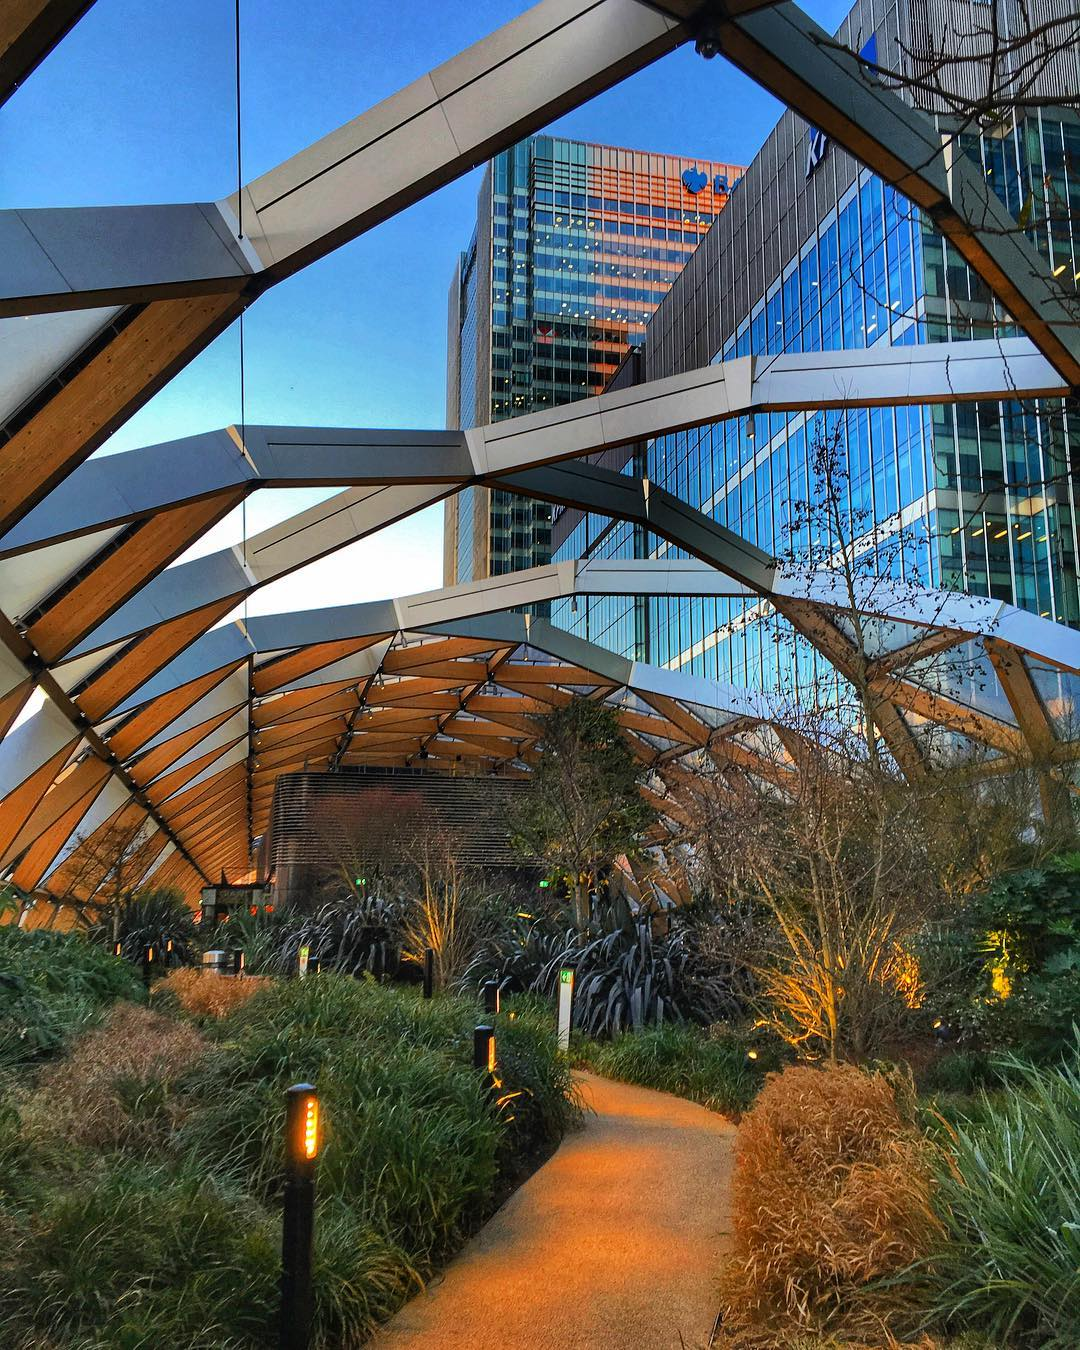 Crossrail Place Roof Garden: Canary Wharf's Peaceful Park